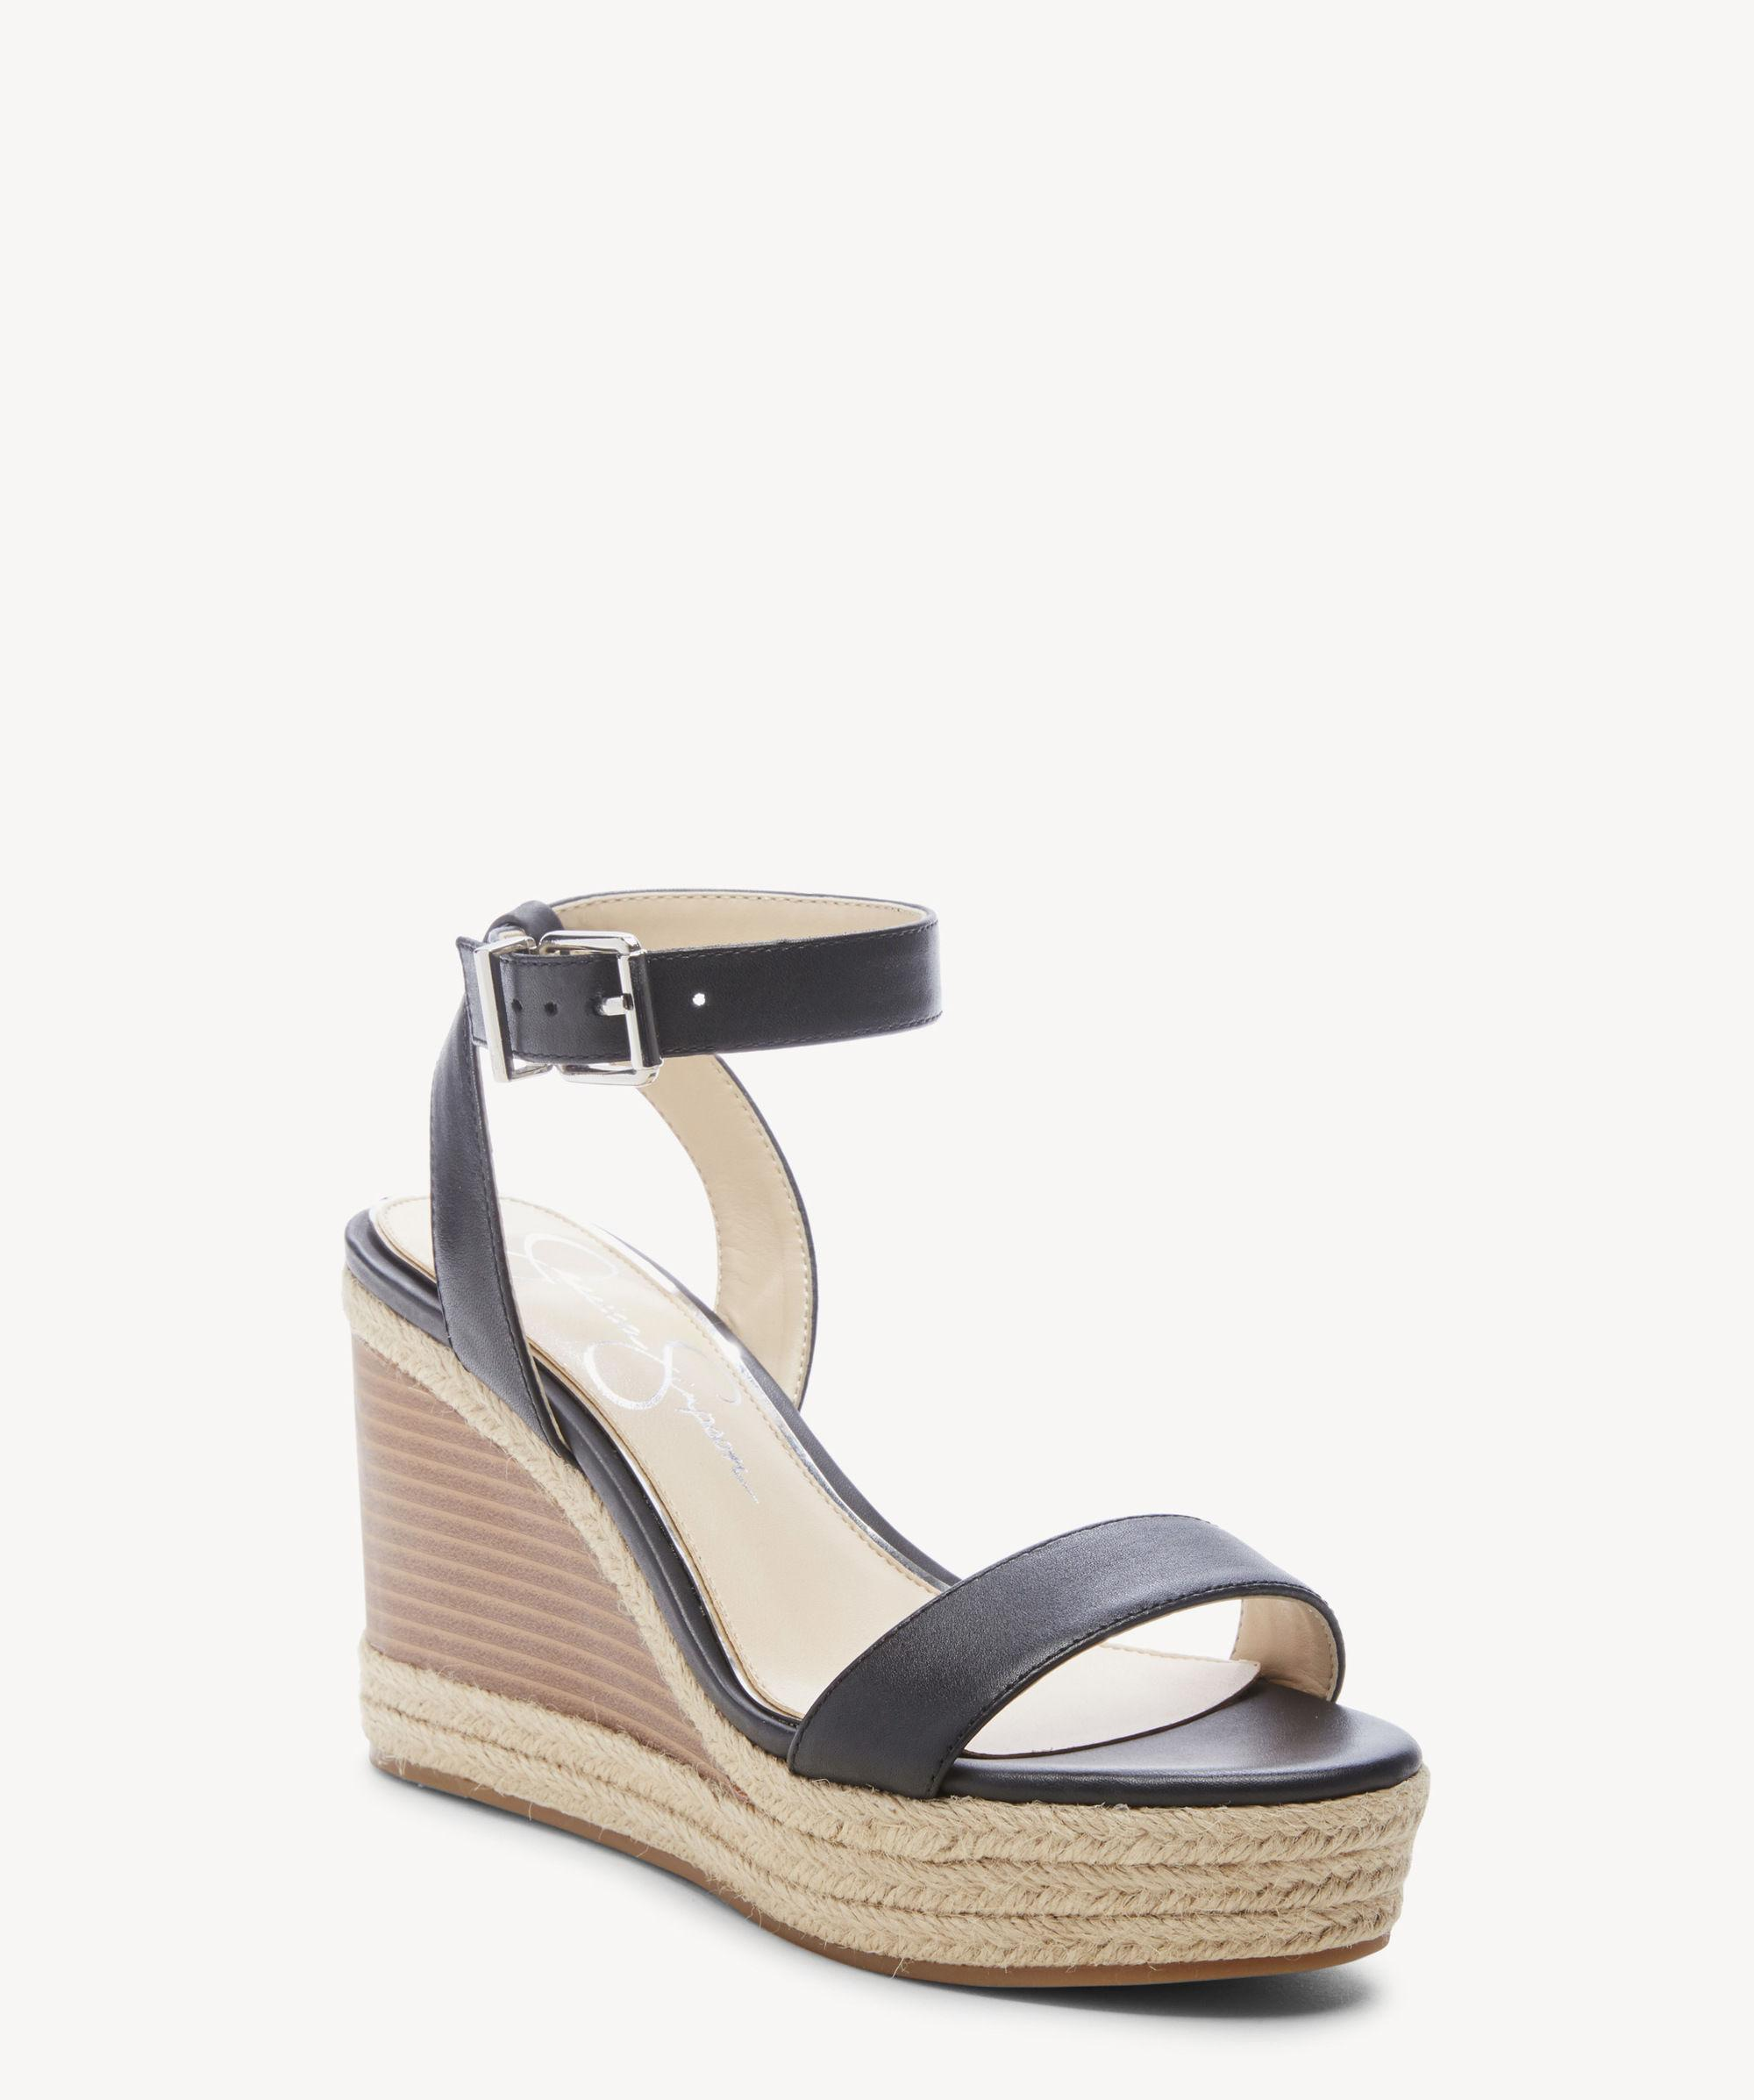 e88329332644 Lyst - Jessica Simpson Maylra Platform Wedge Sandal in Black